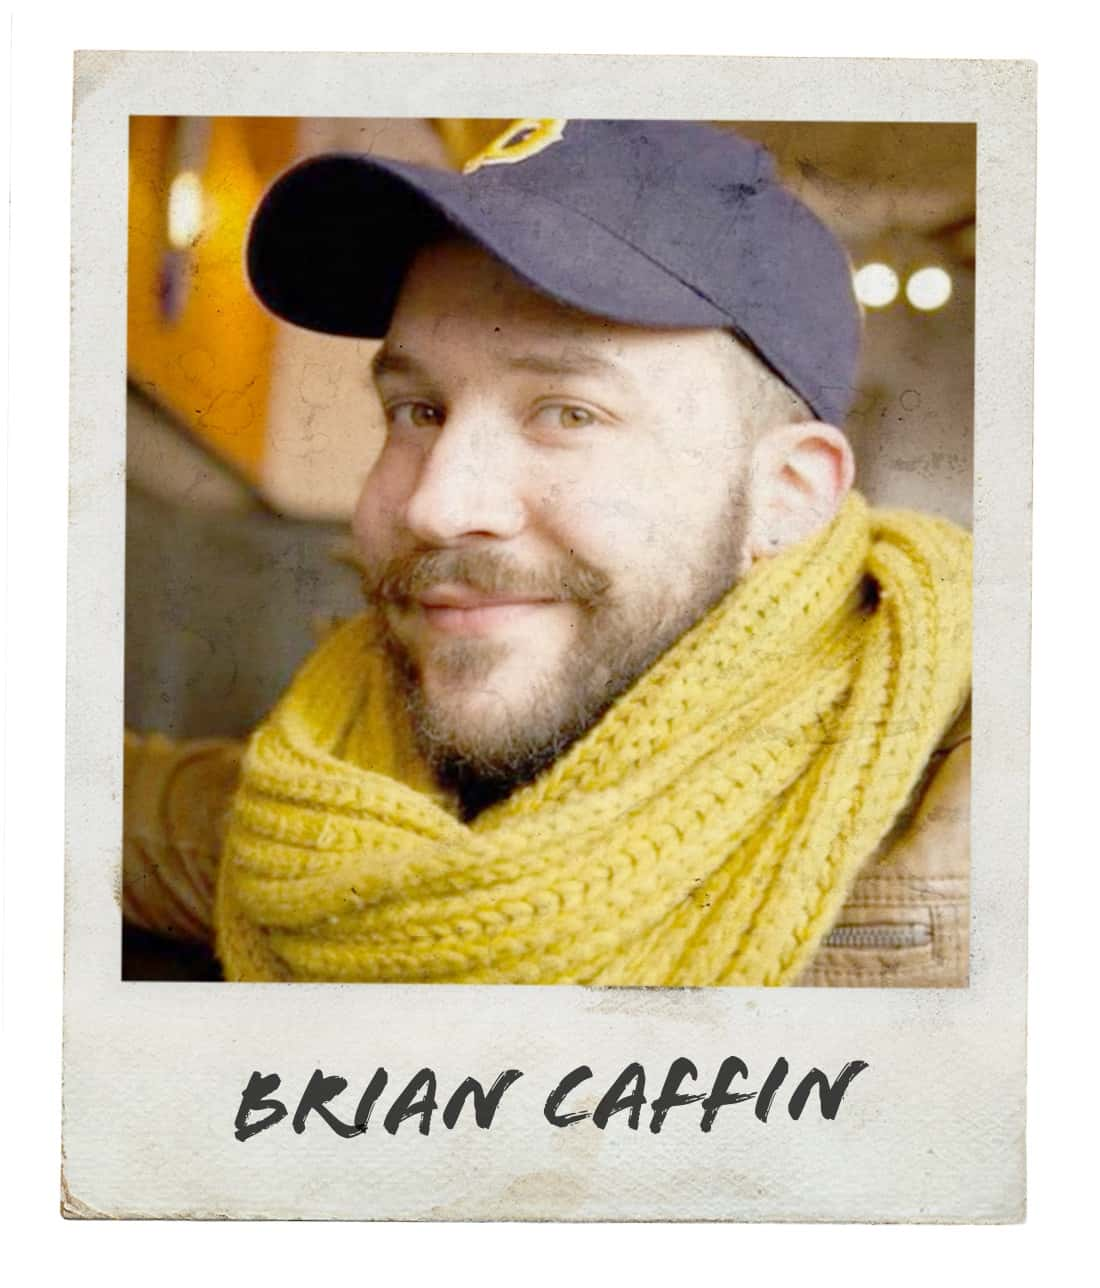 "Polaroid-style photo of bearded man wearing a blue cap and yellow scarf, taking a selfie for #mygcn campaign. Under the photo the caption reads ""Brian Caffin""."